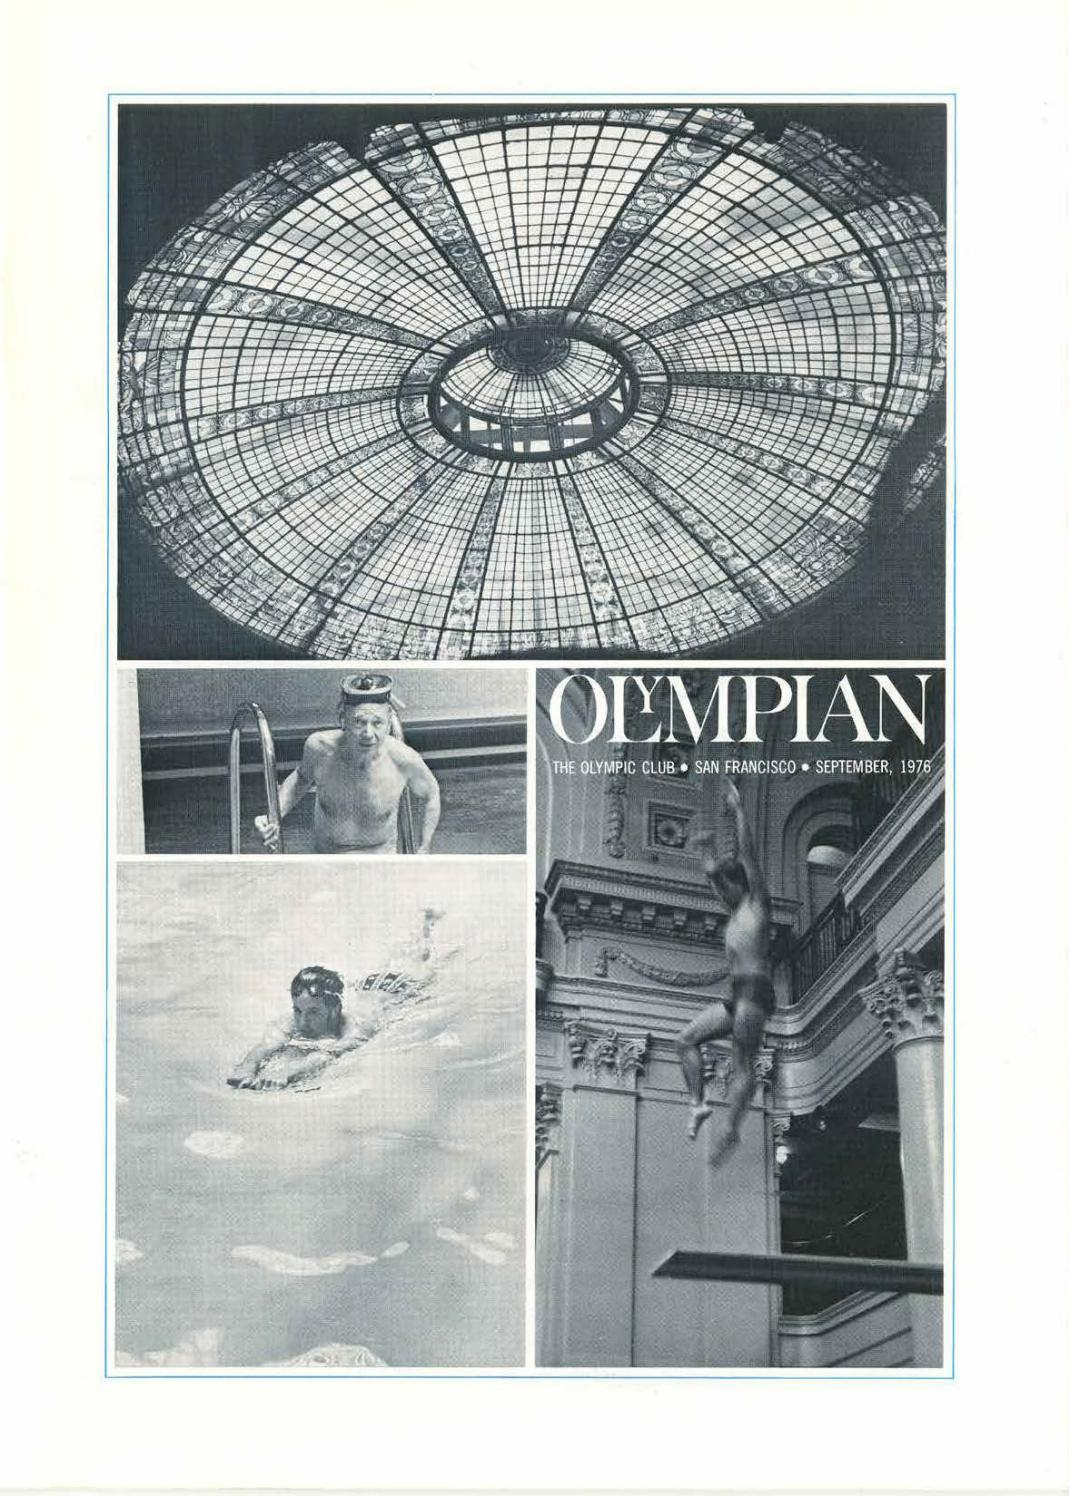 September 1976 Olympian By The Olympic Club Issuu